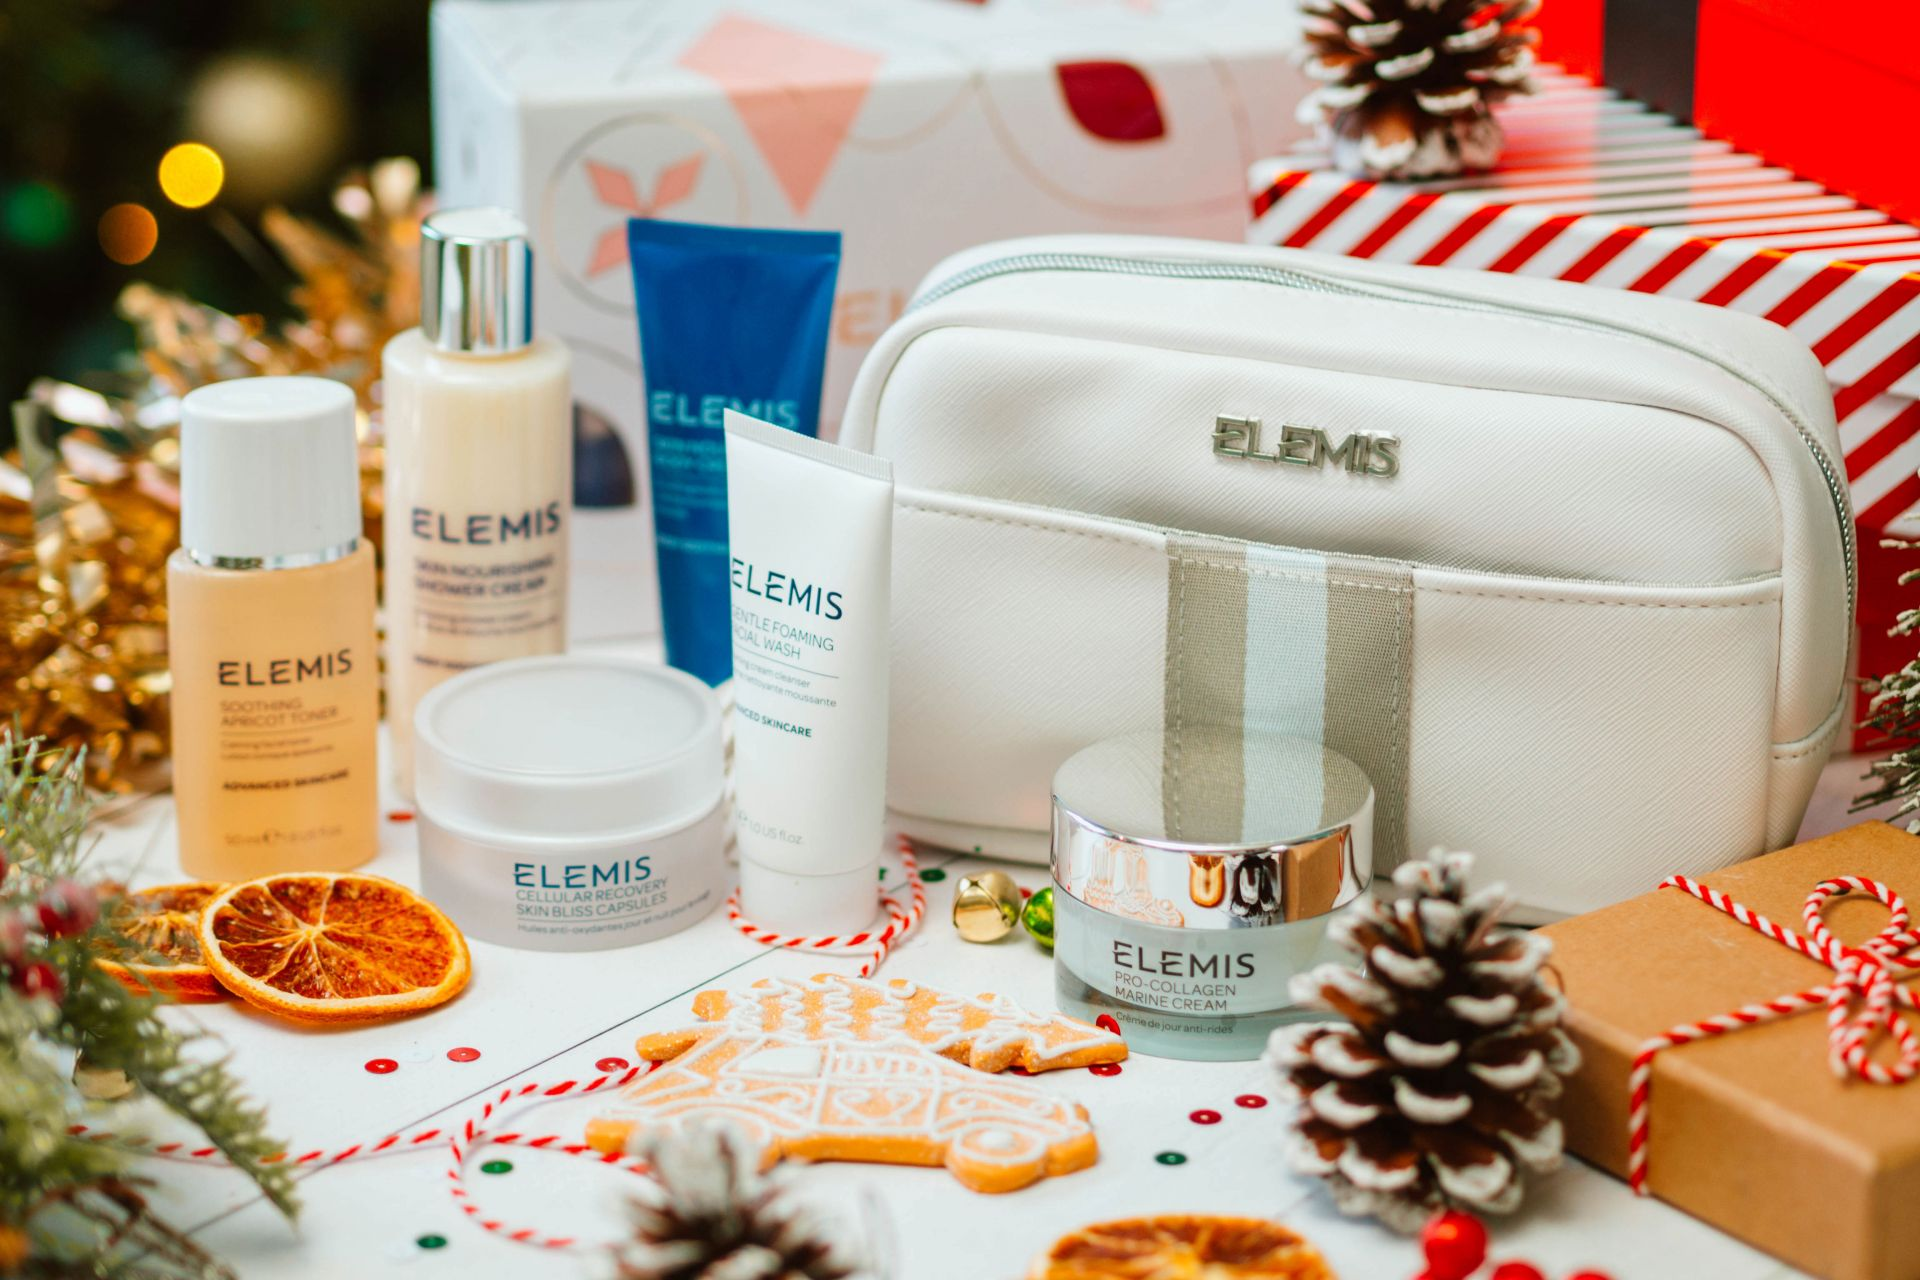 Elemis Christmas GIfts 2019